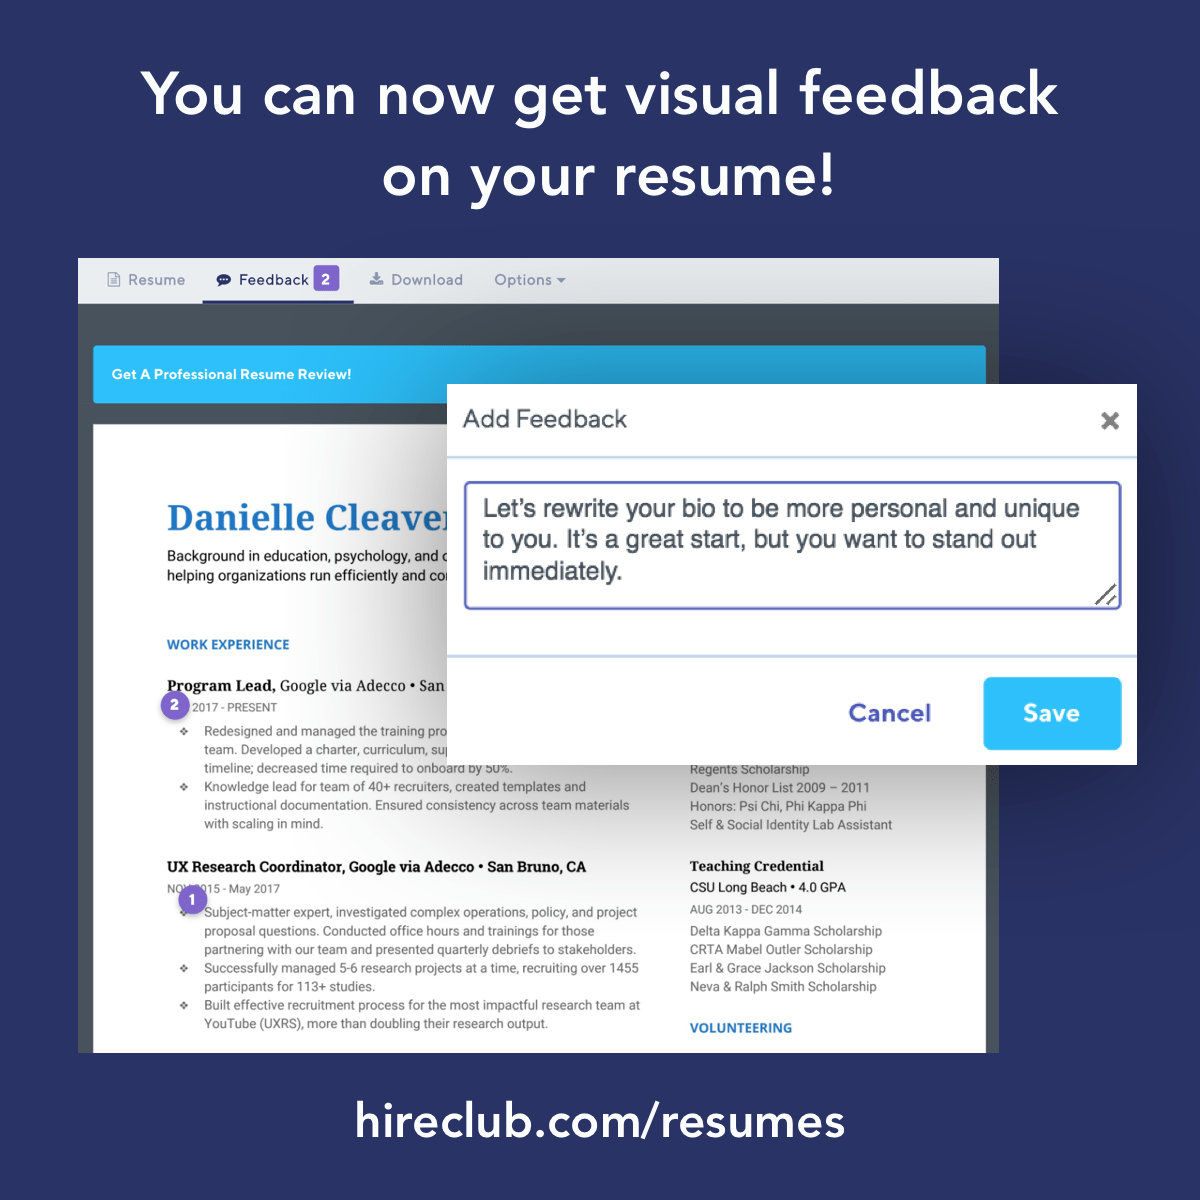 Resume Review Feature Launched!